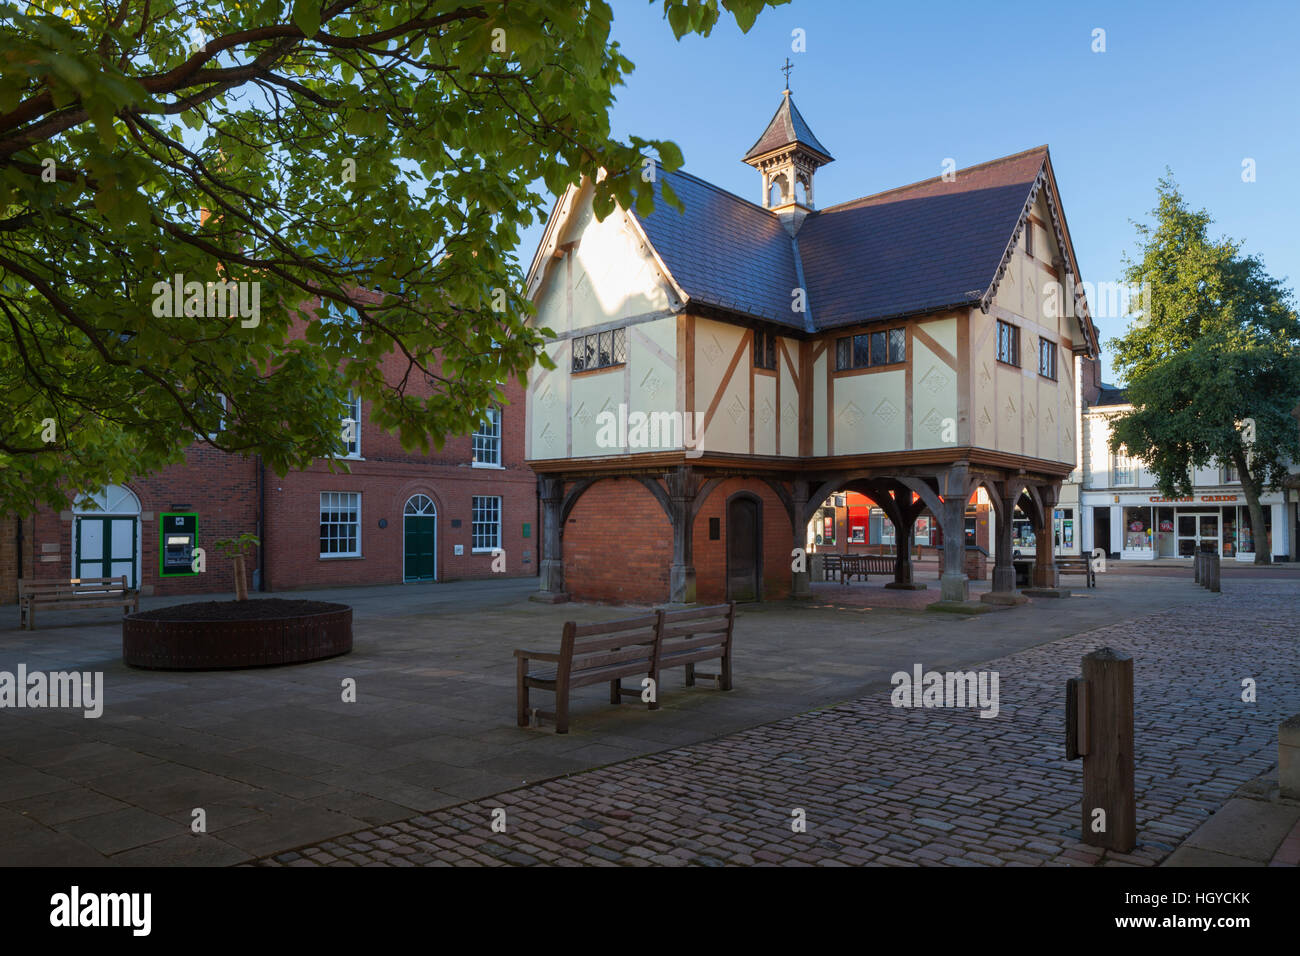 The recently restored Old Grammar School in Church Square dates from 1614, Market Harborough, Leicestershire, England - Stock Image